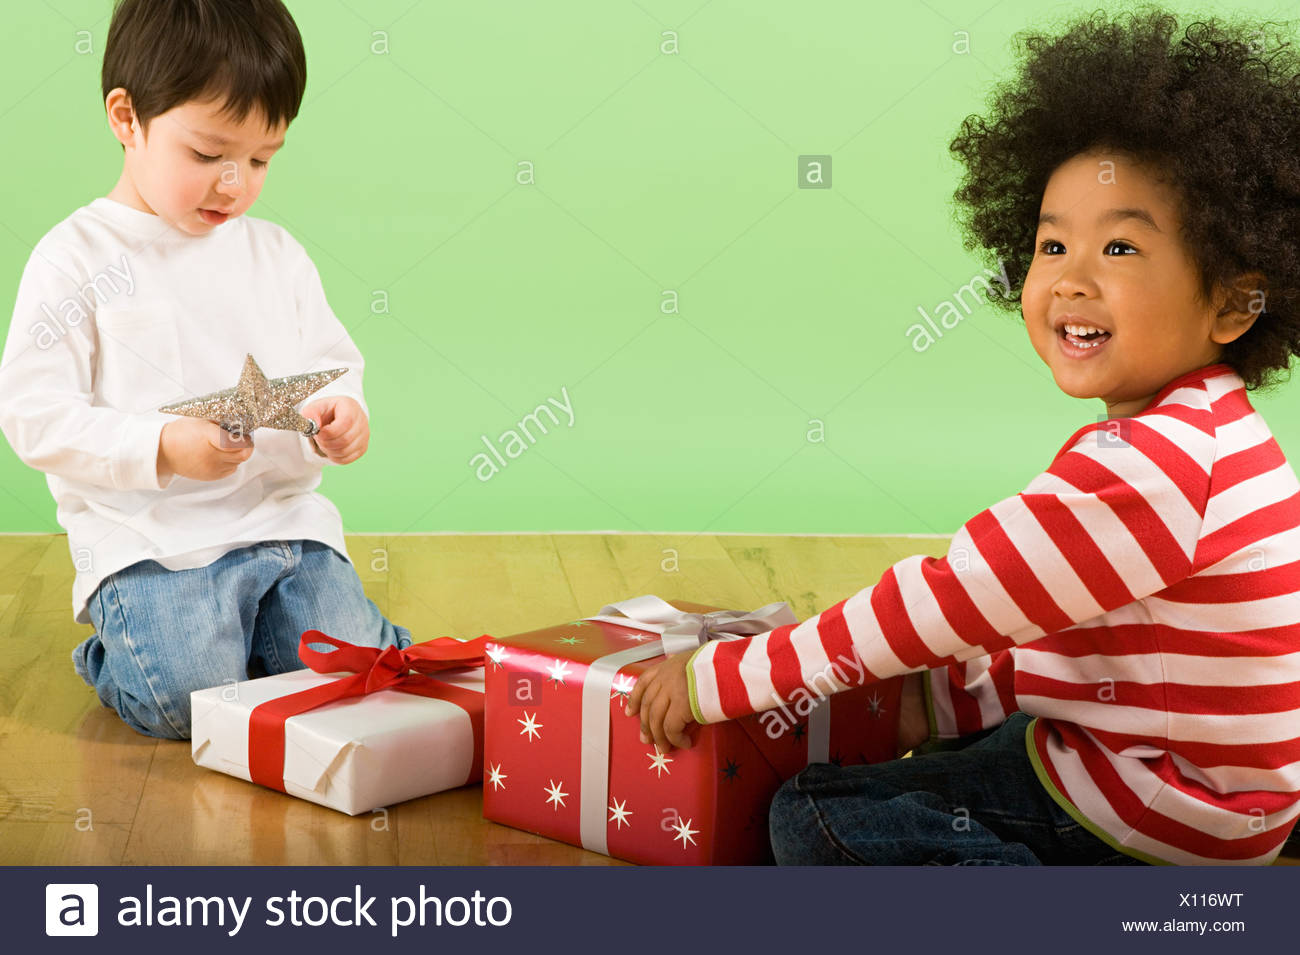 Boys with presents - Stock Image